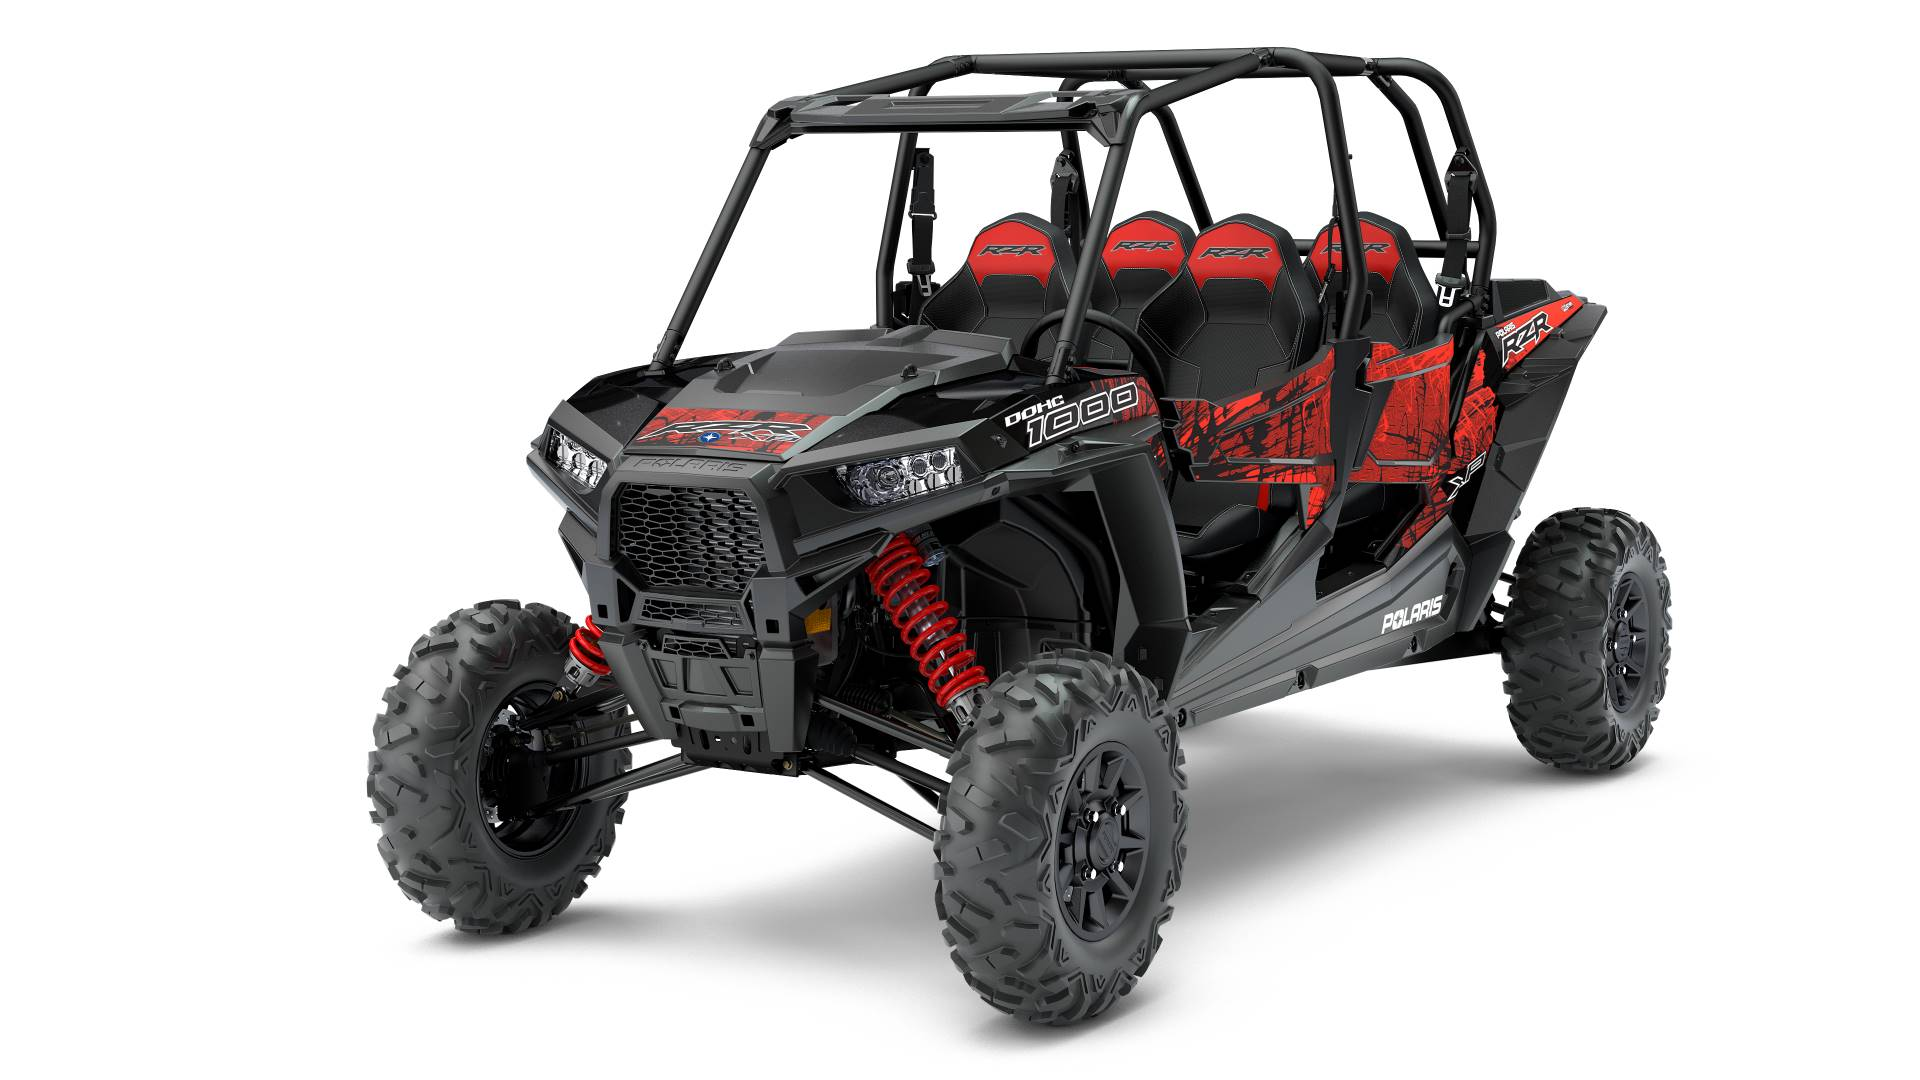 2017 Polaris RZR XP 4 1000 EPS for sale 66086